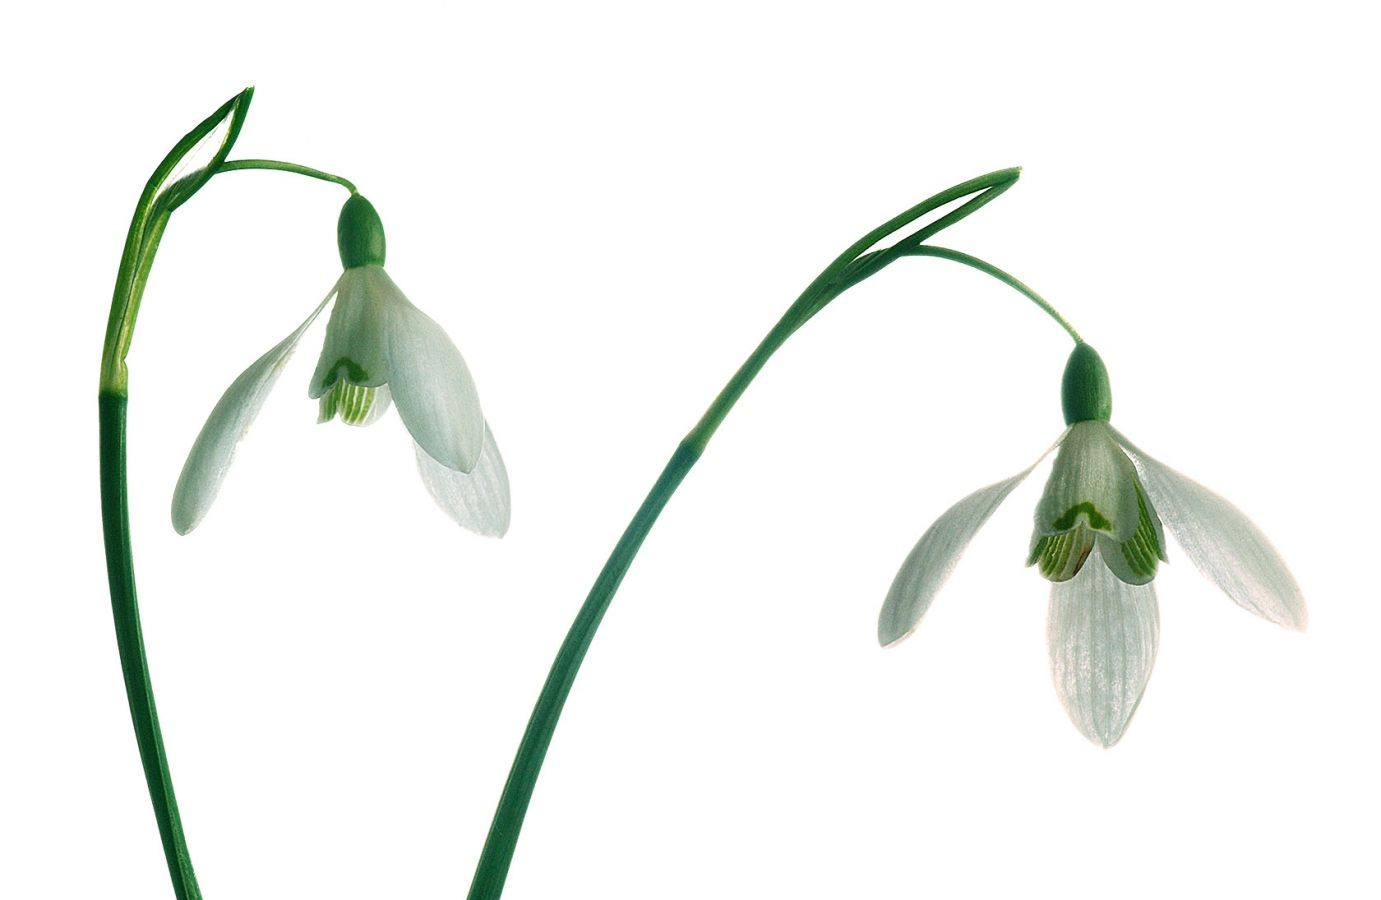 Snowdrops-Galanthus, photographed against a white paper backdrop. Photo by John Robertson.